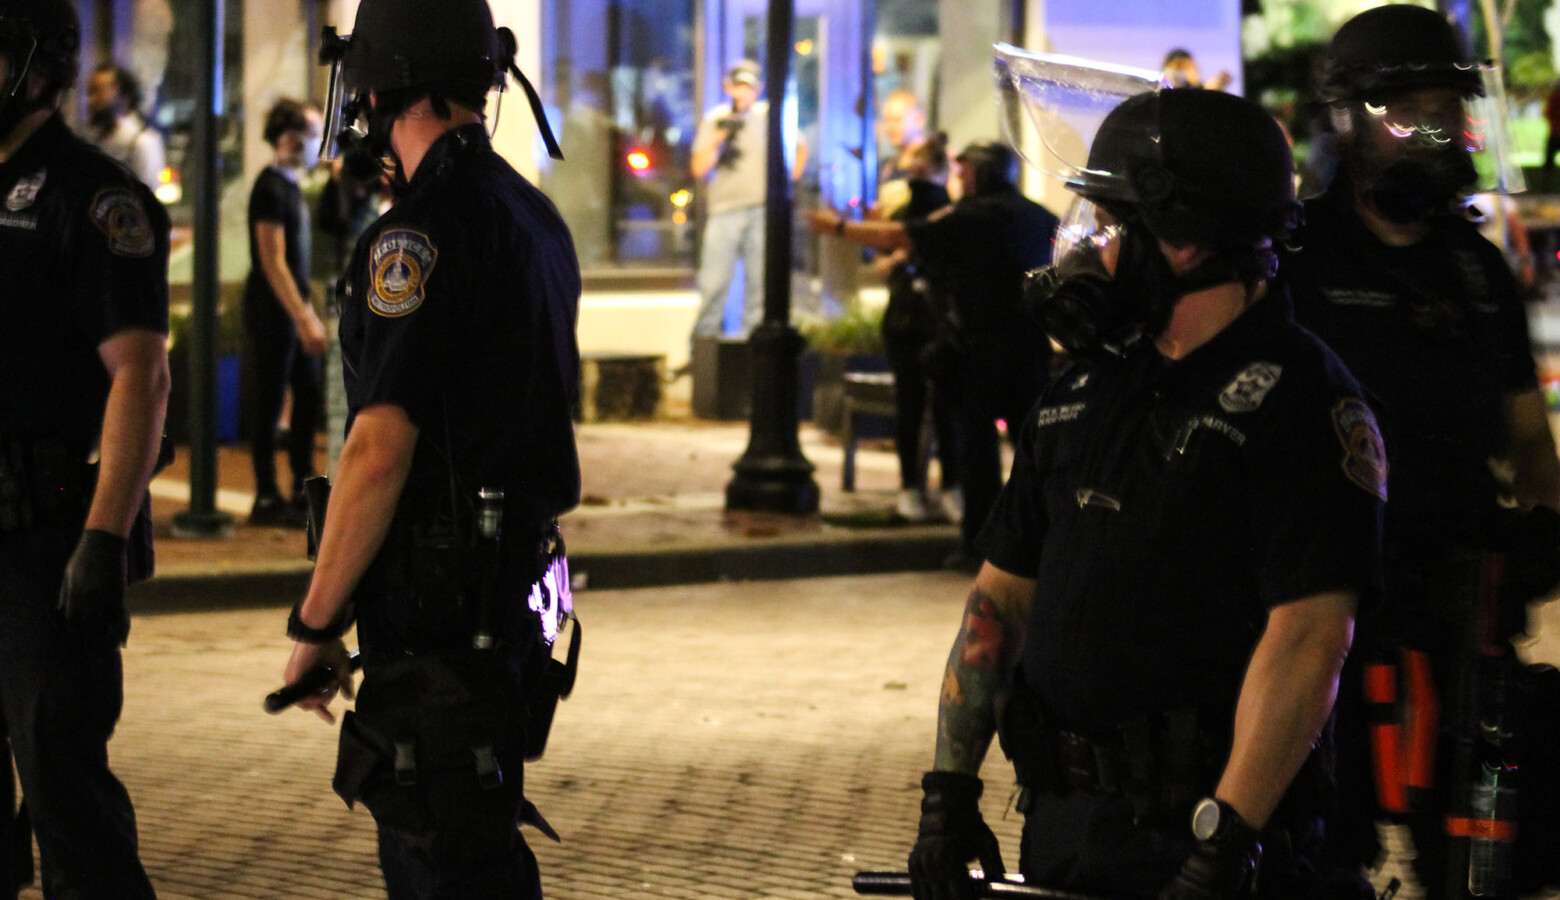 The House police reform bill was crafted over the last year following protests around the country against police misconduct and racial inequity. (Lauren Chapman/IPB News)